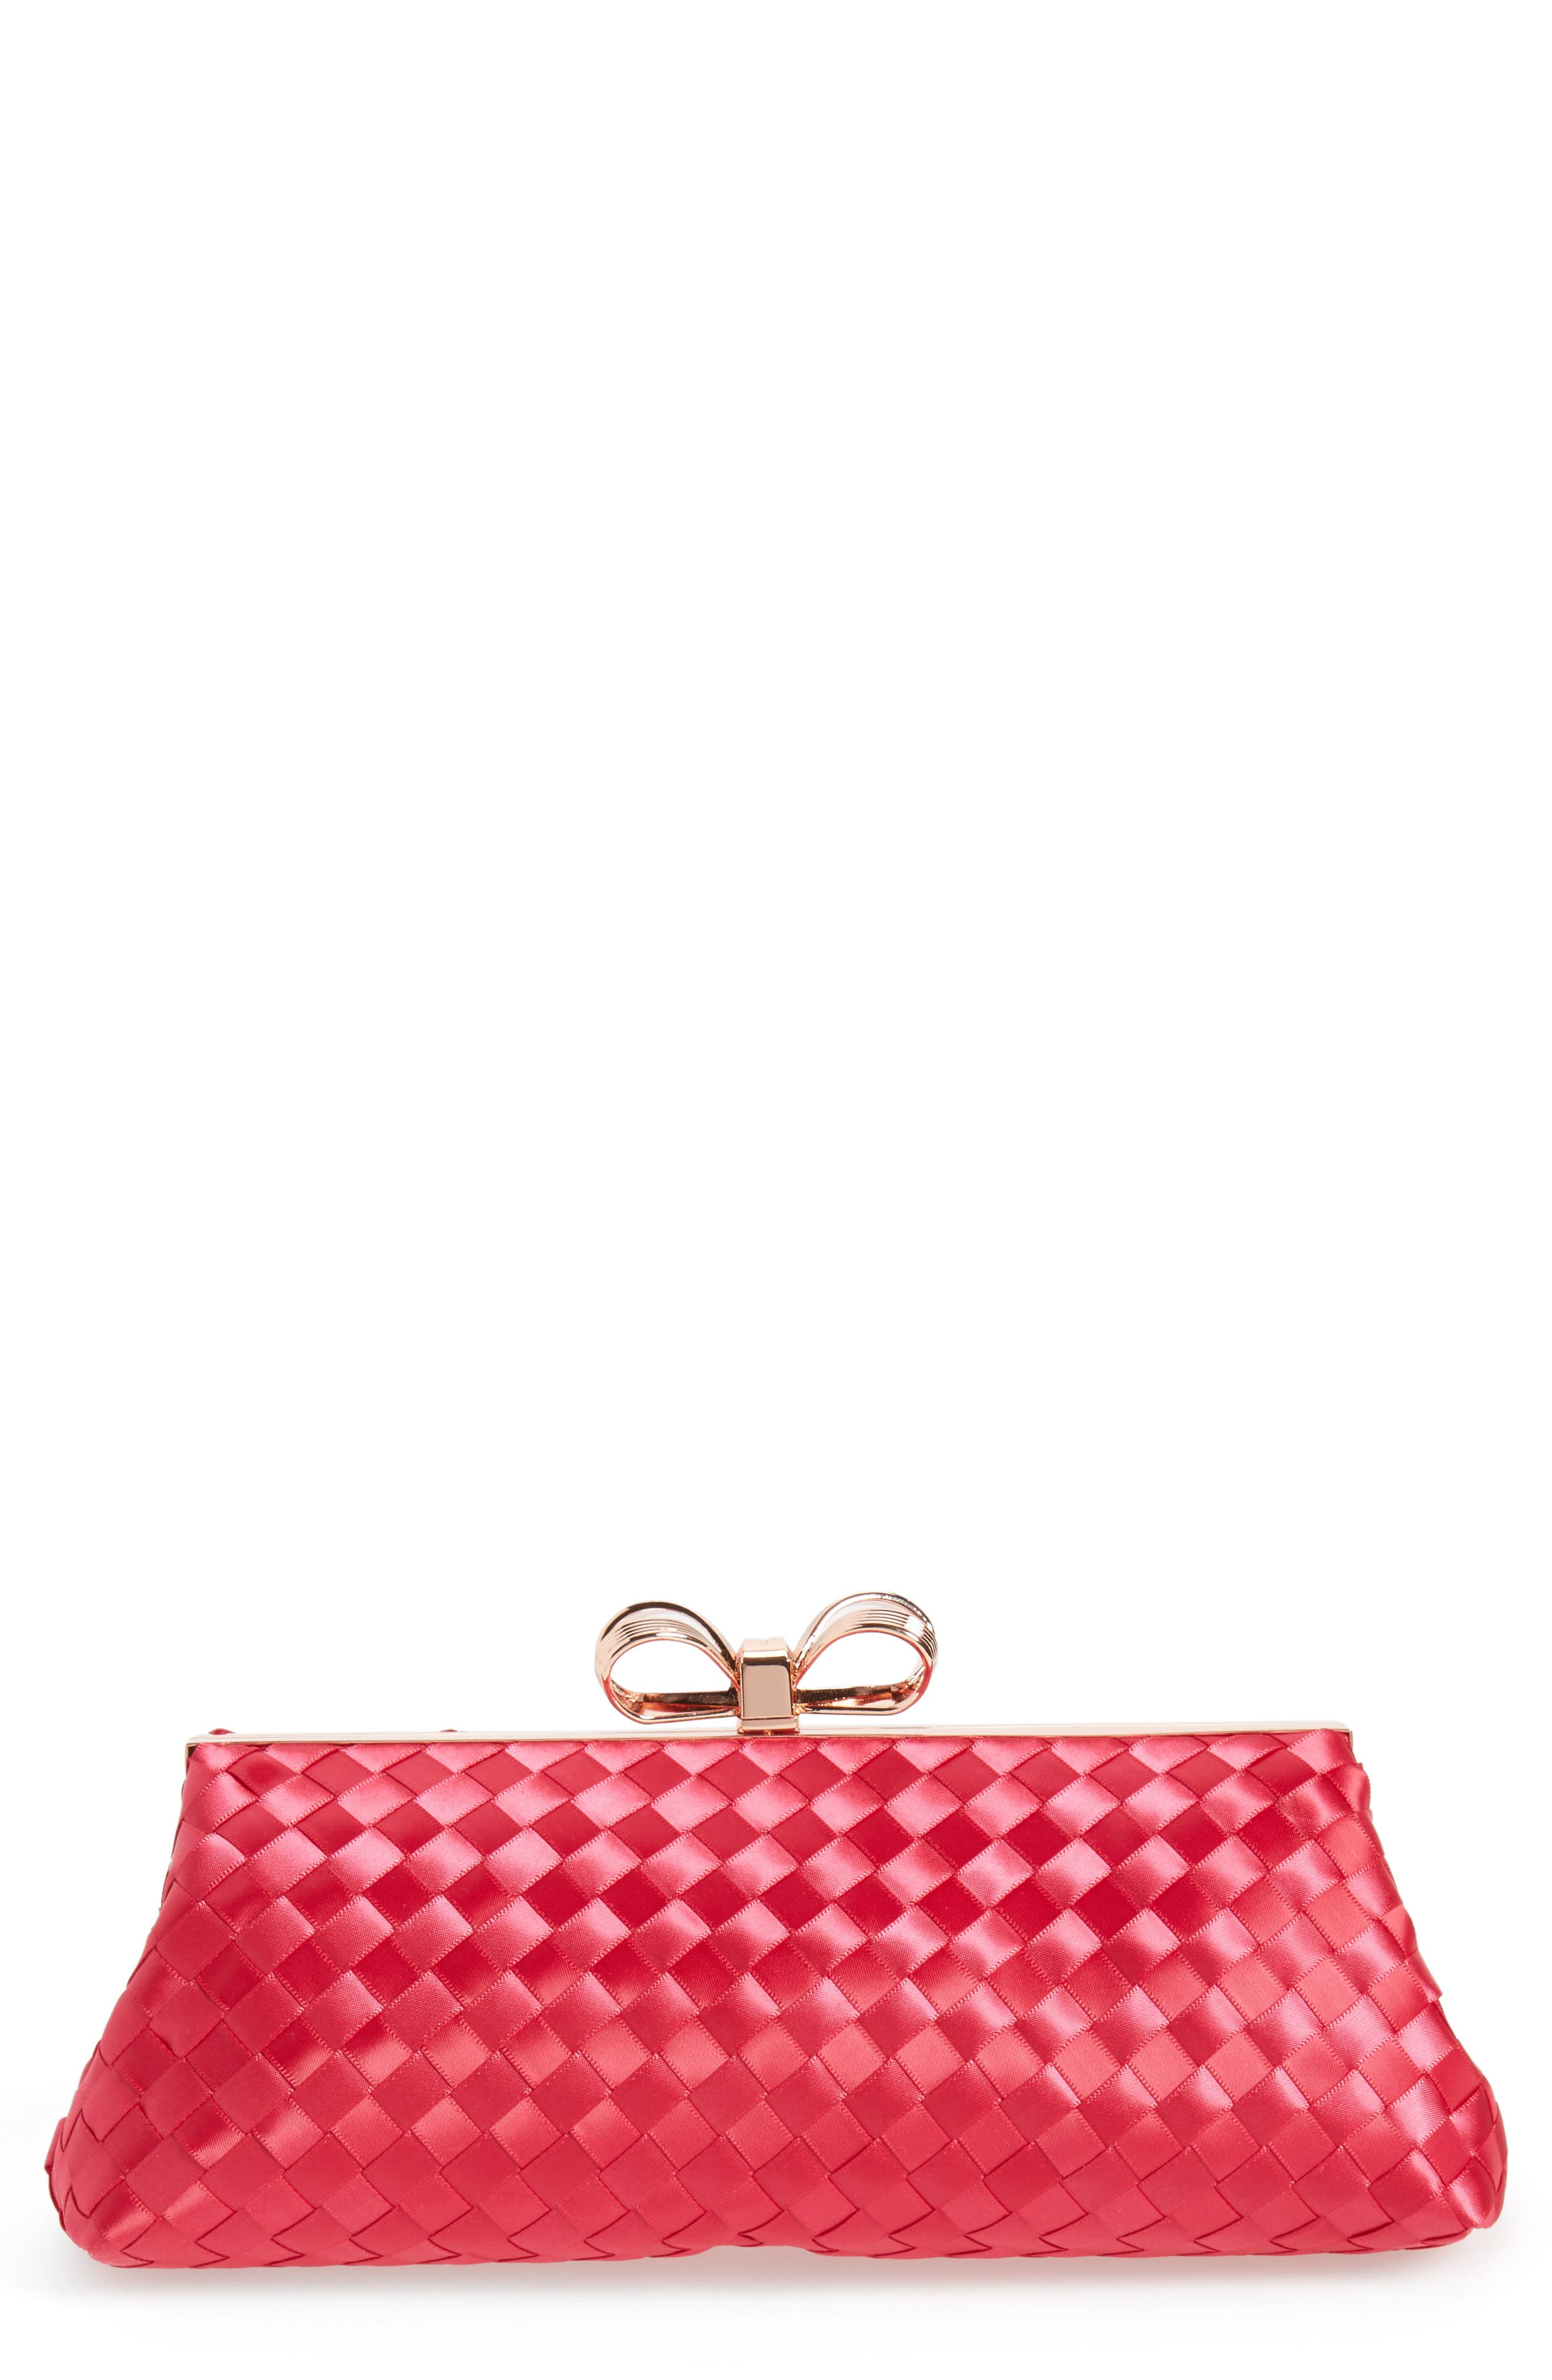 Alaina Woven Frame Clutch,                             Main thumbnail 1, color,                             Deep Pink